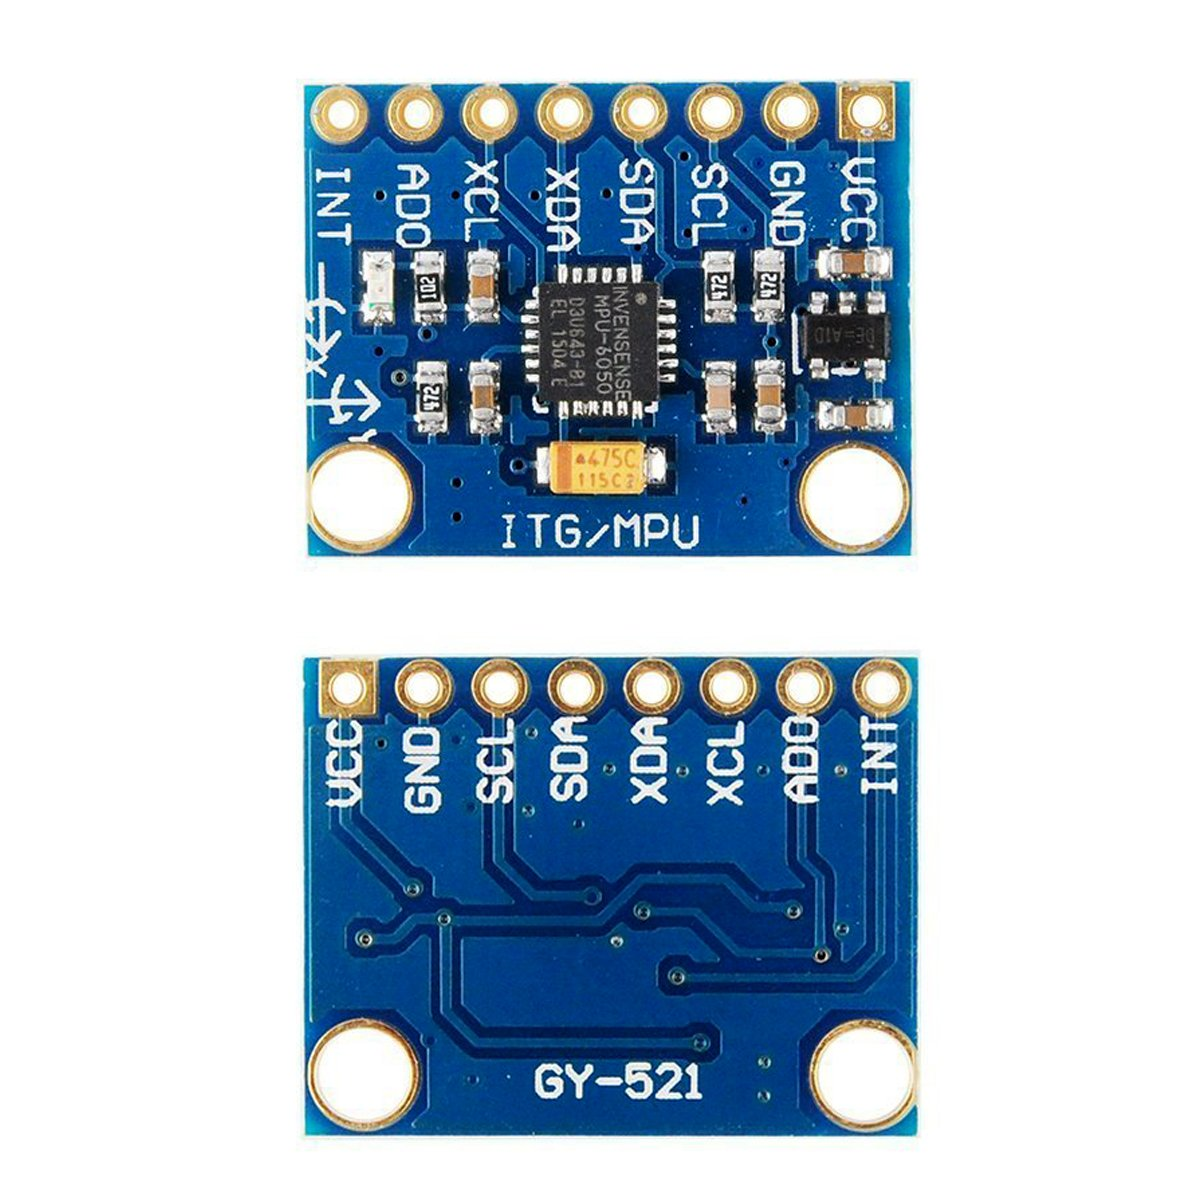 Makerfire Arduino Gy 521 Mpu 6050 Module 3 Axial Gyroscope Interfacing Tripleaxis Accelerometer With Atmega 16 Circuit Diagram Stance Tilt Industrial Scientific